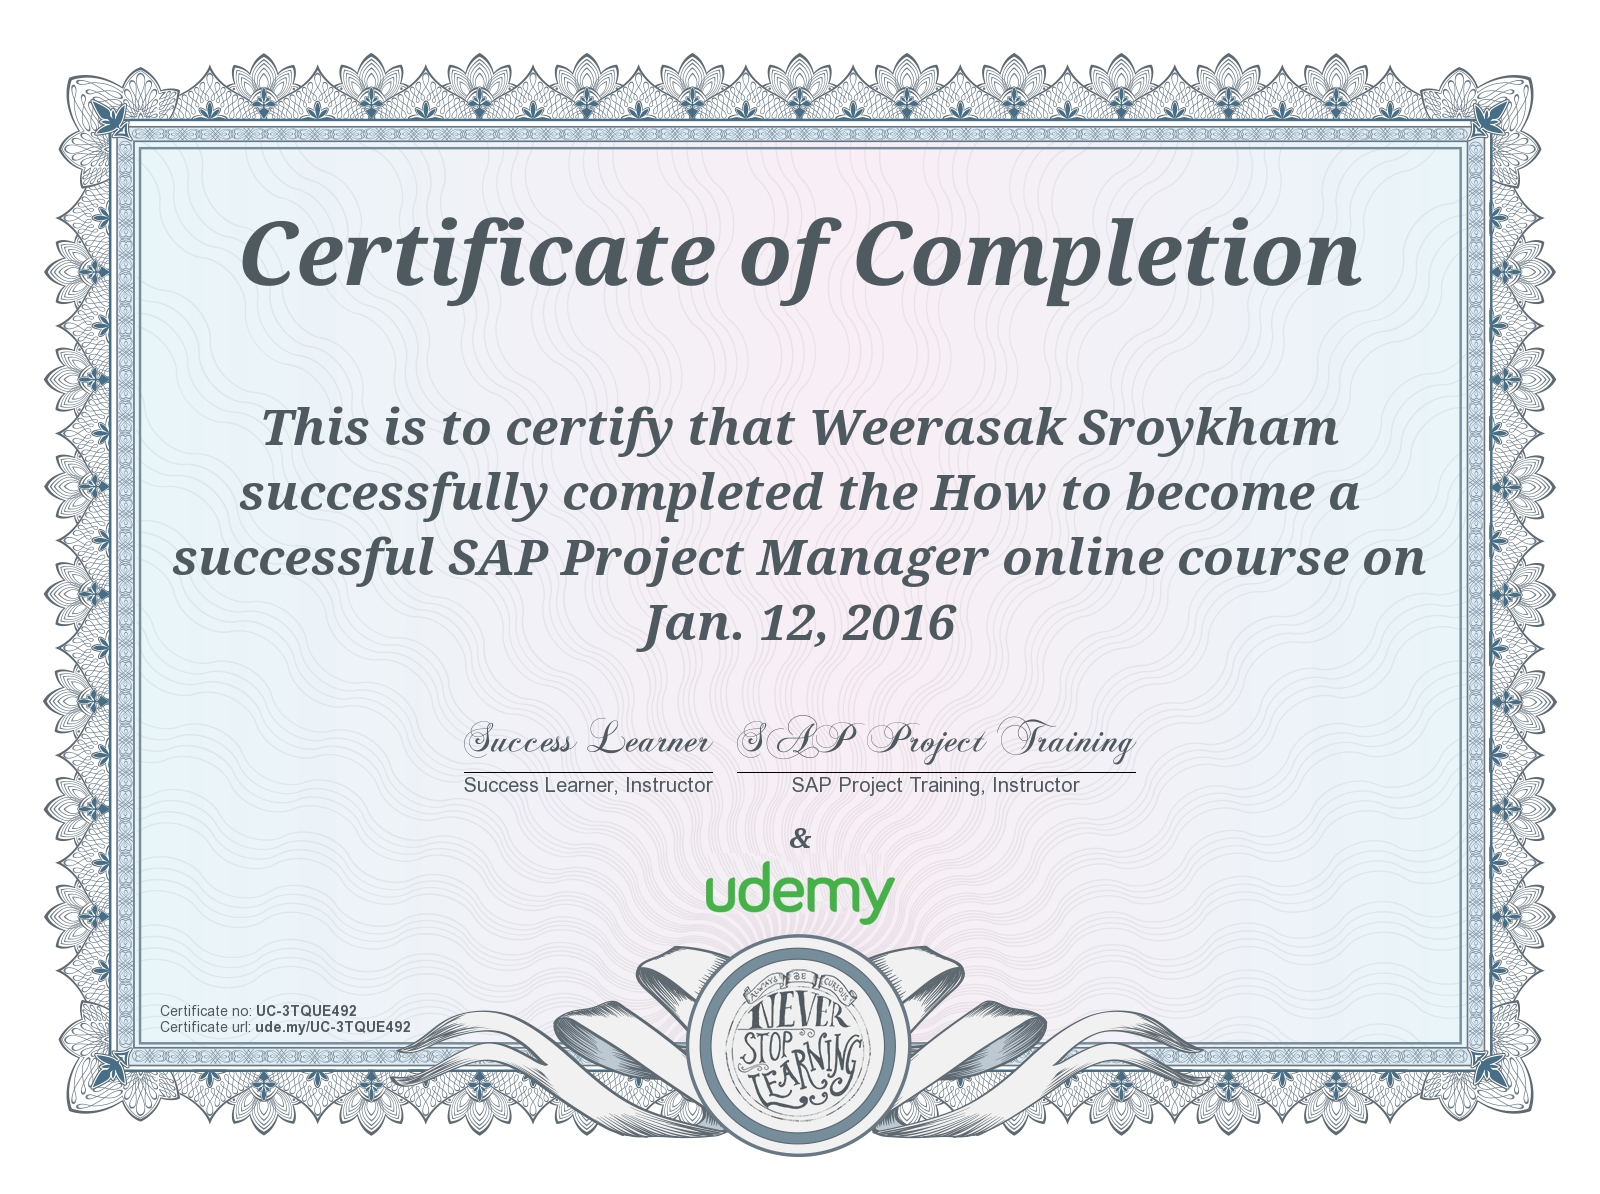 Weerasak sroykham online learning blog we learn we share we this certificate above verifies that weerasak sroykham successfully completed the course how to become a successful sap project manager on jan 1betcityfo Choice Image